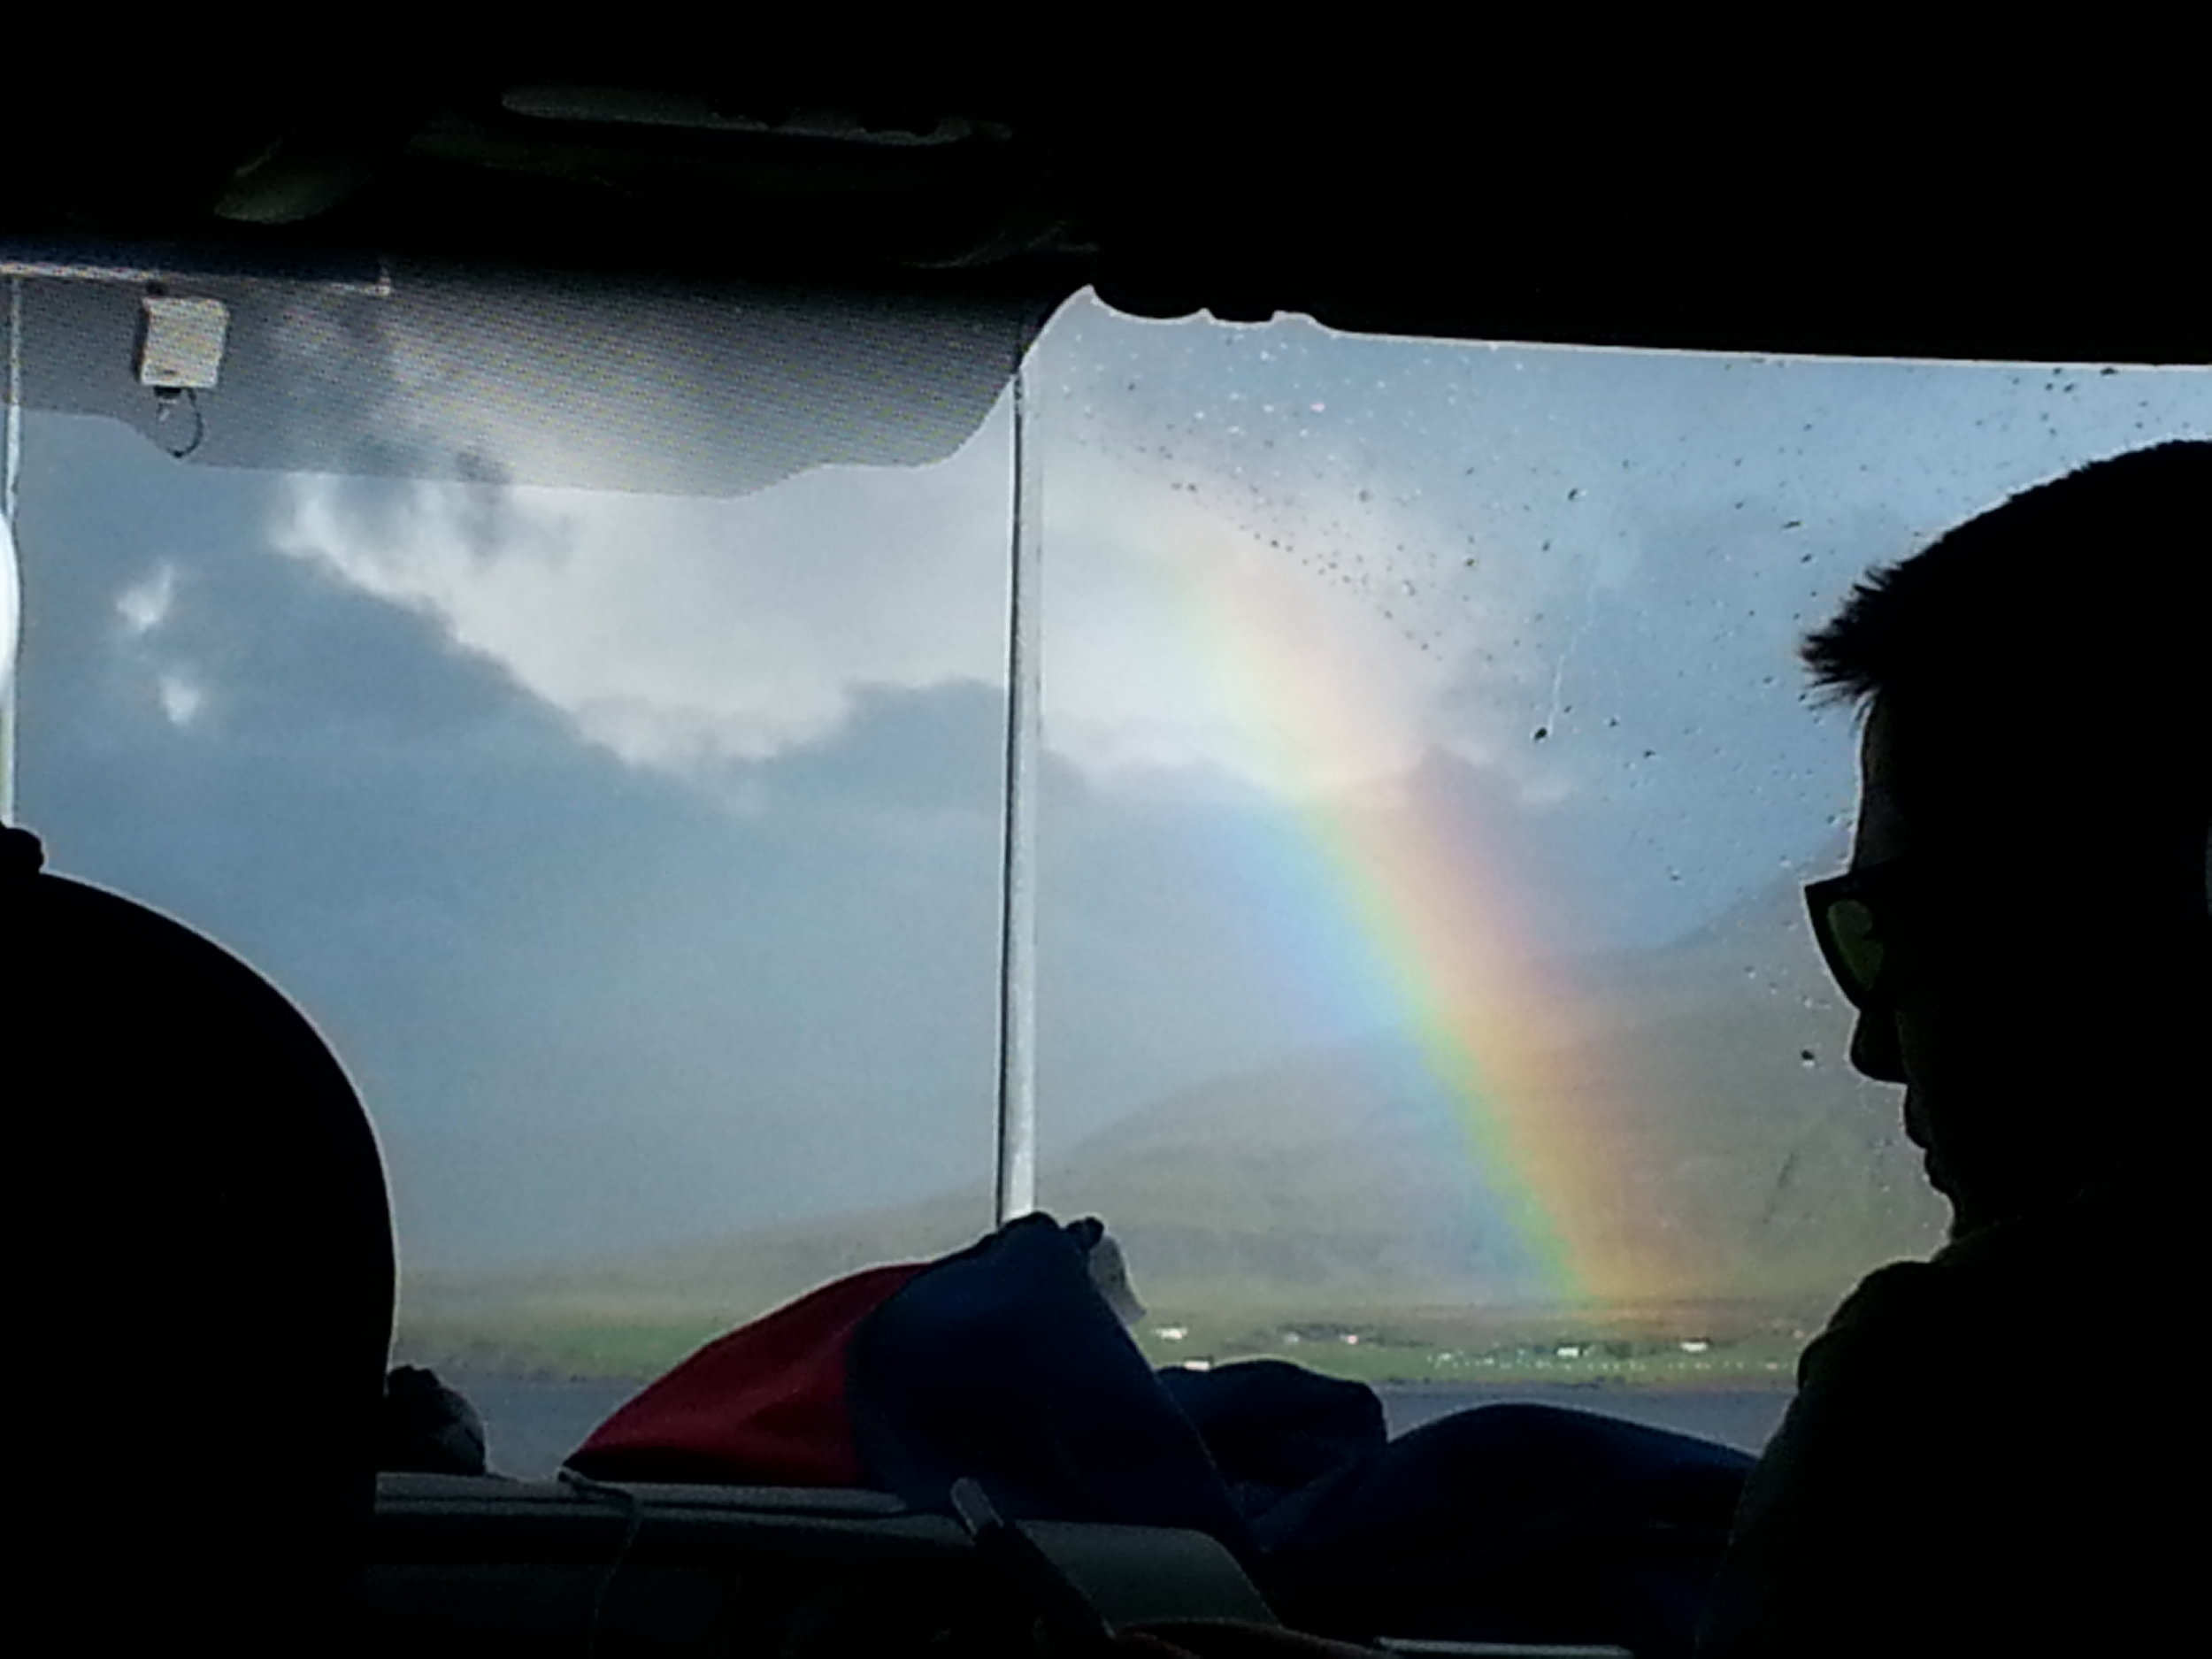 Rainbows were always welcome during our 4.5 hour drive to the capital!